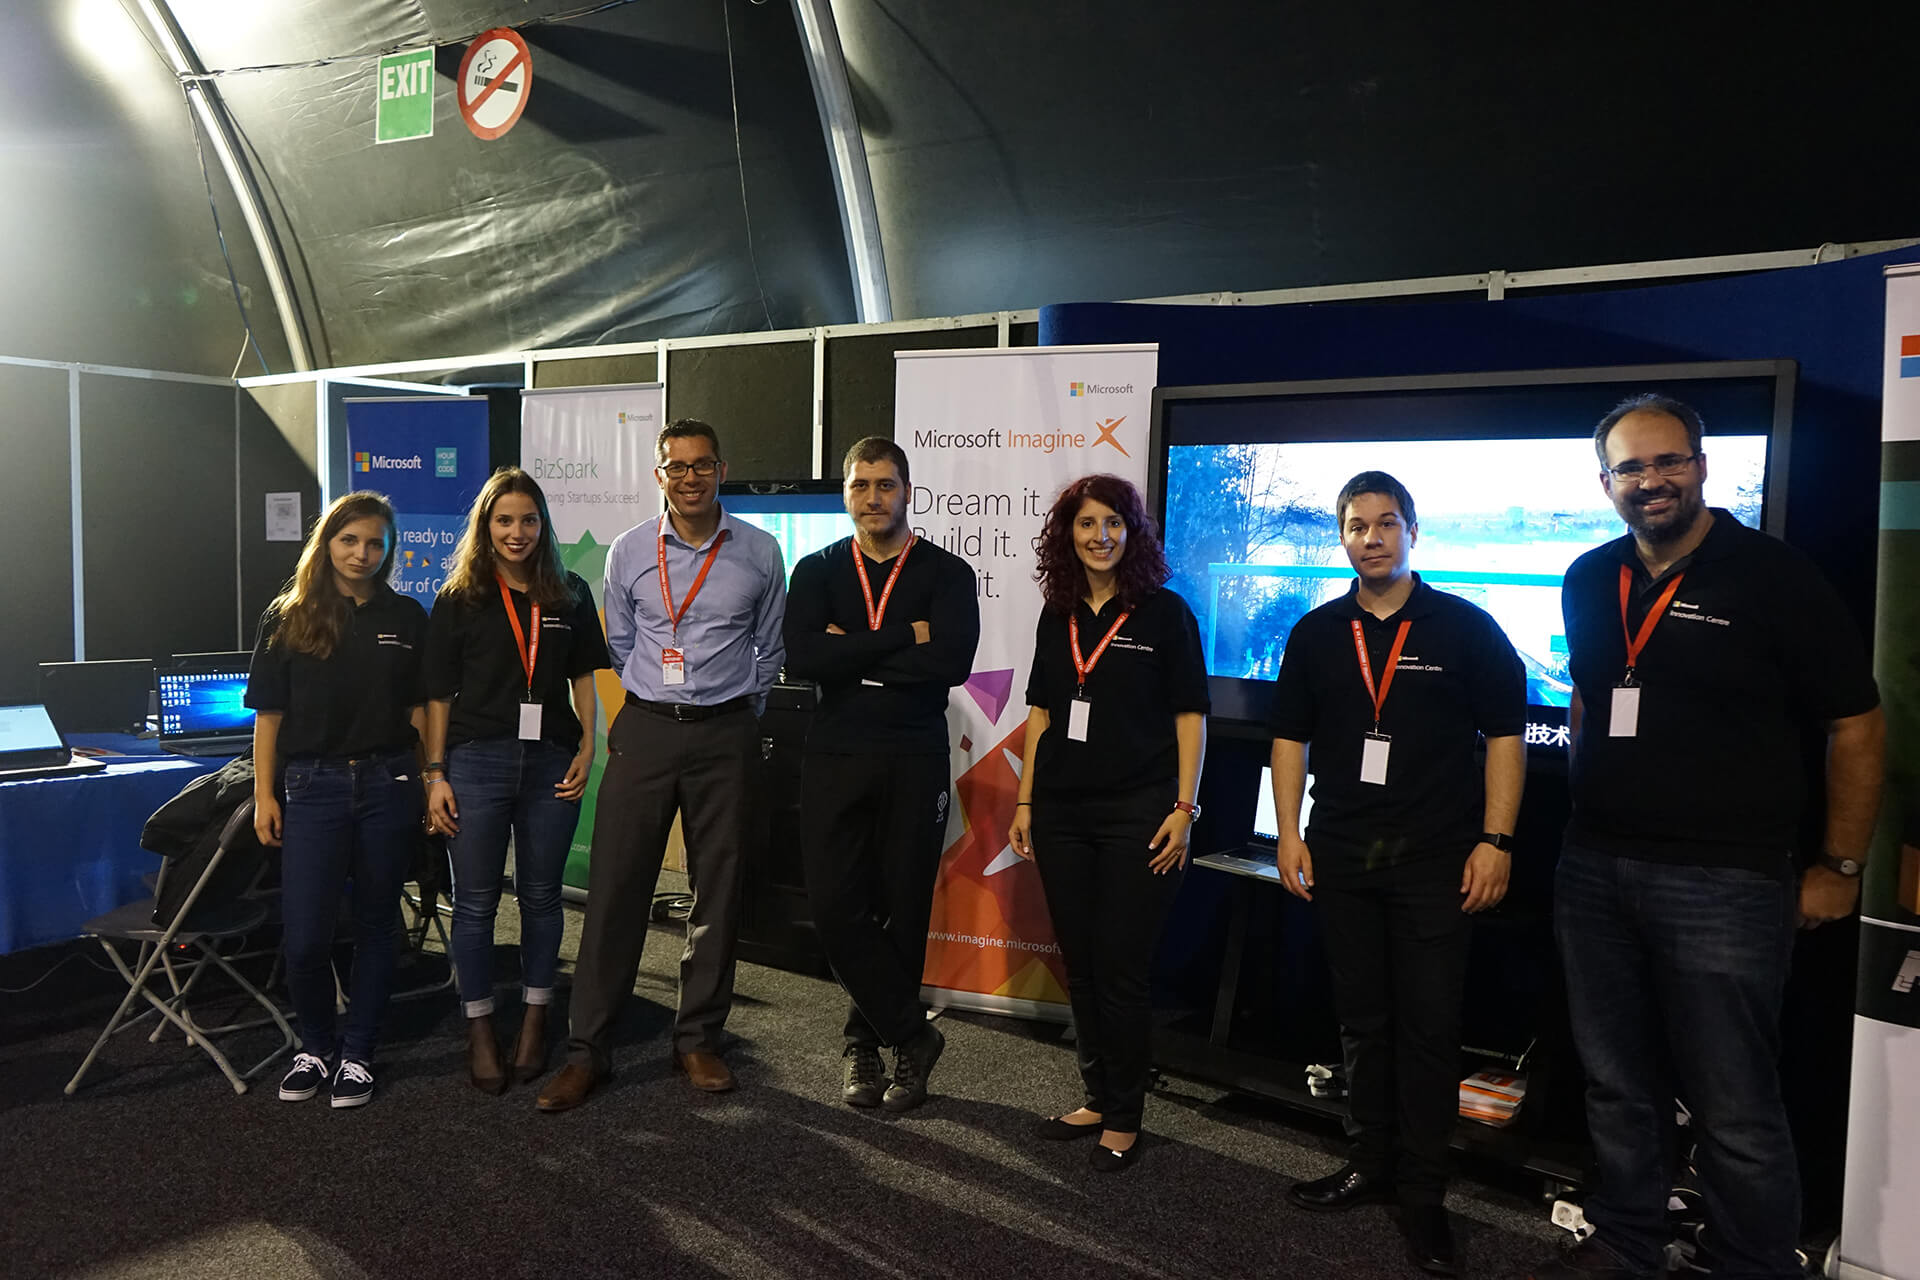 LightBuzz and Microsoft teams at Malta Robotics Olympiad